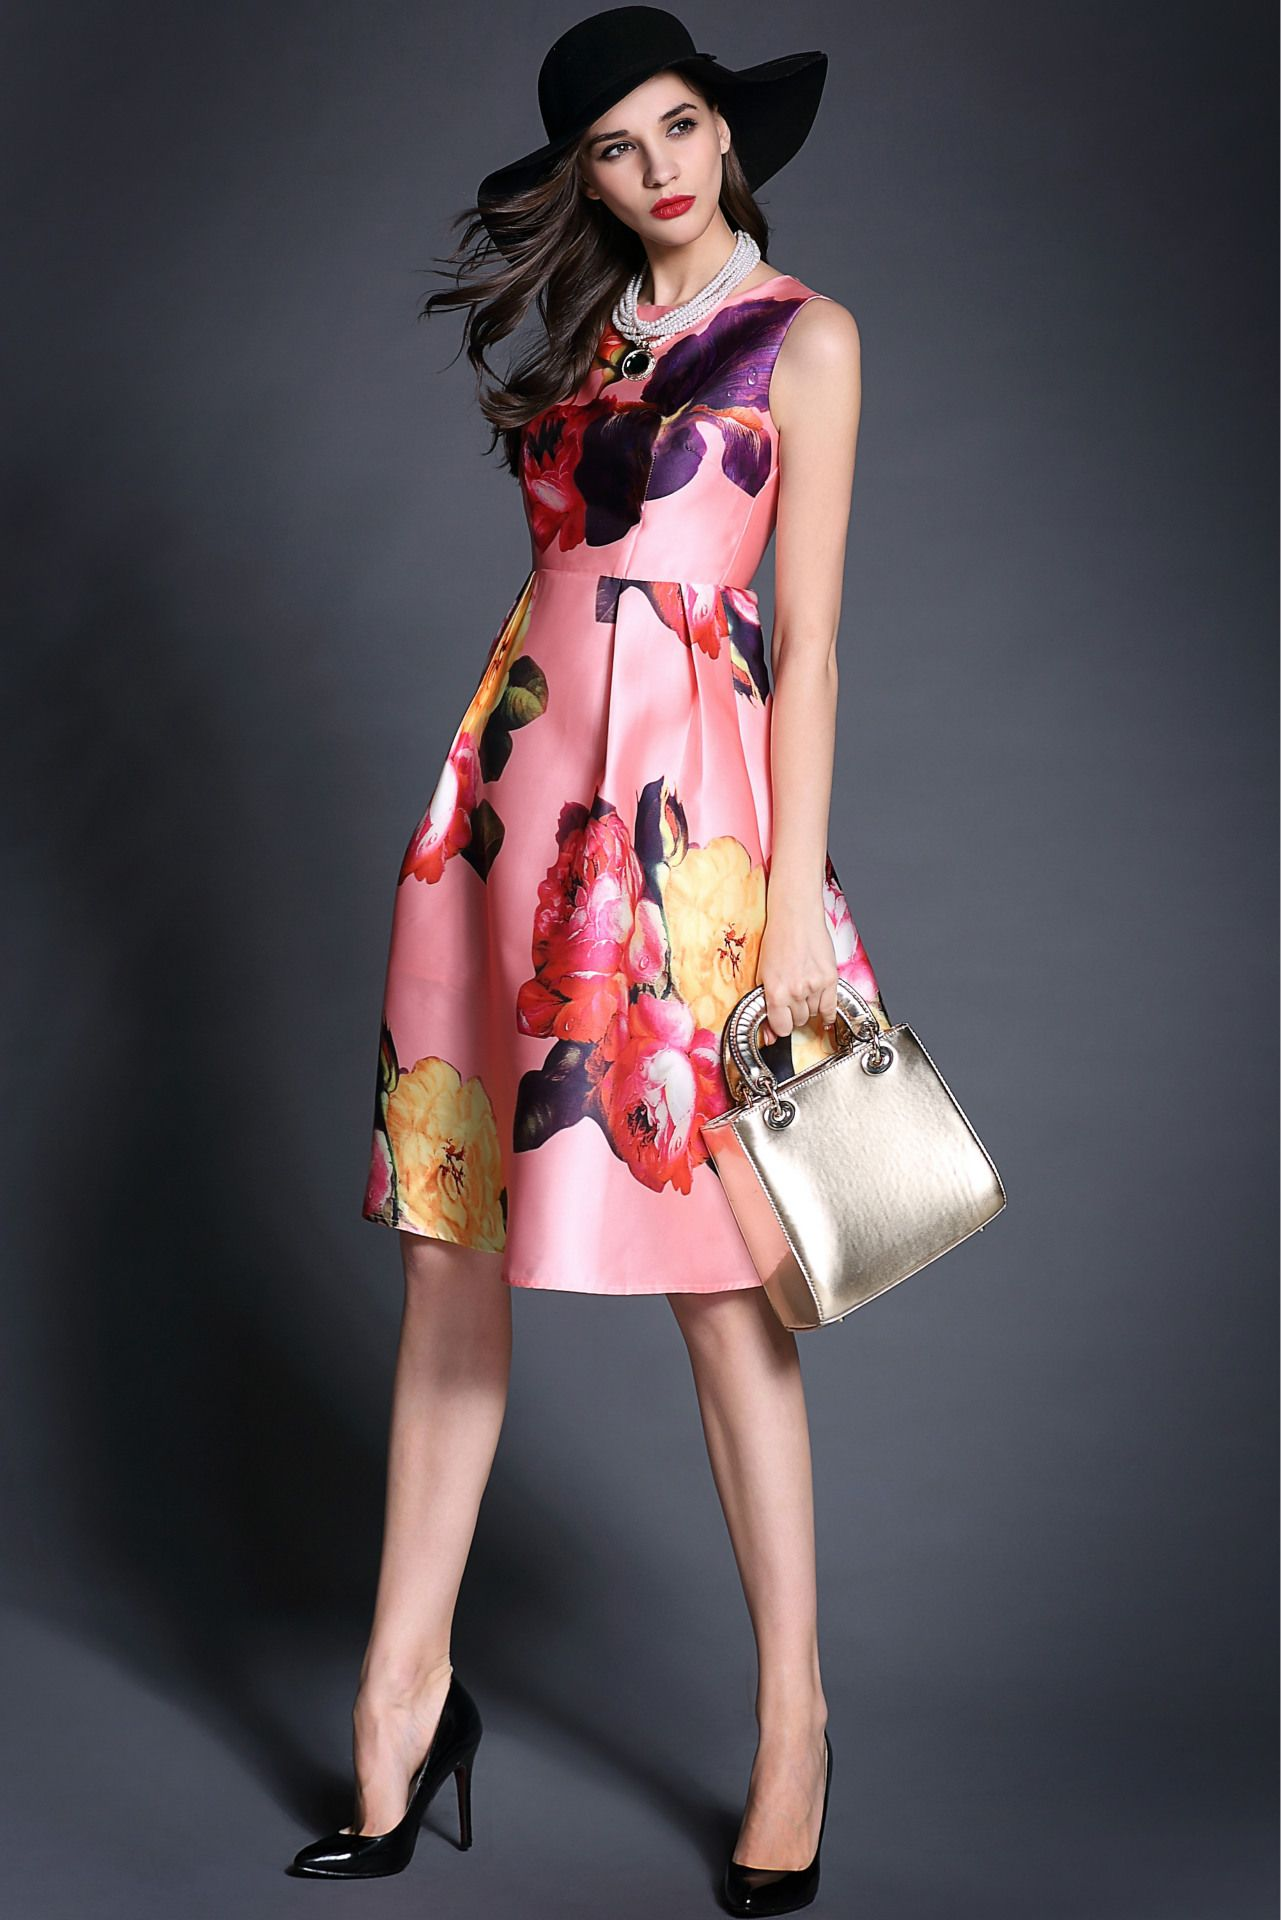 shop for Women Novelty Flower Pattern Round Neck Sleeveless Dress and more for everyday cheap prices at Lalalilo.com - Your Online Womens Clothes Store